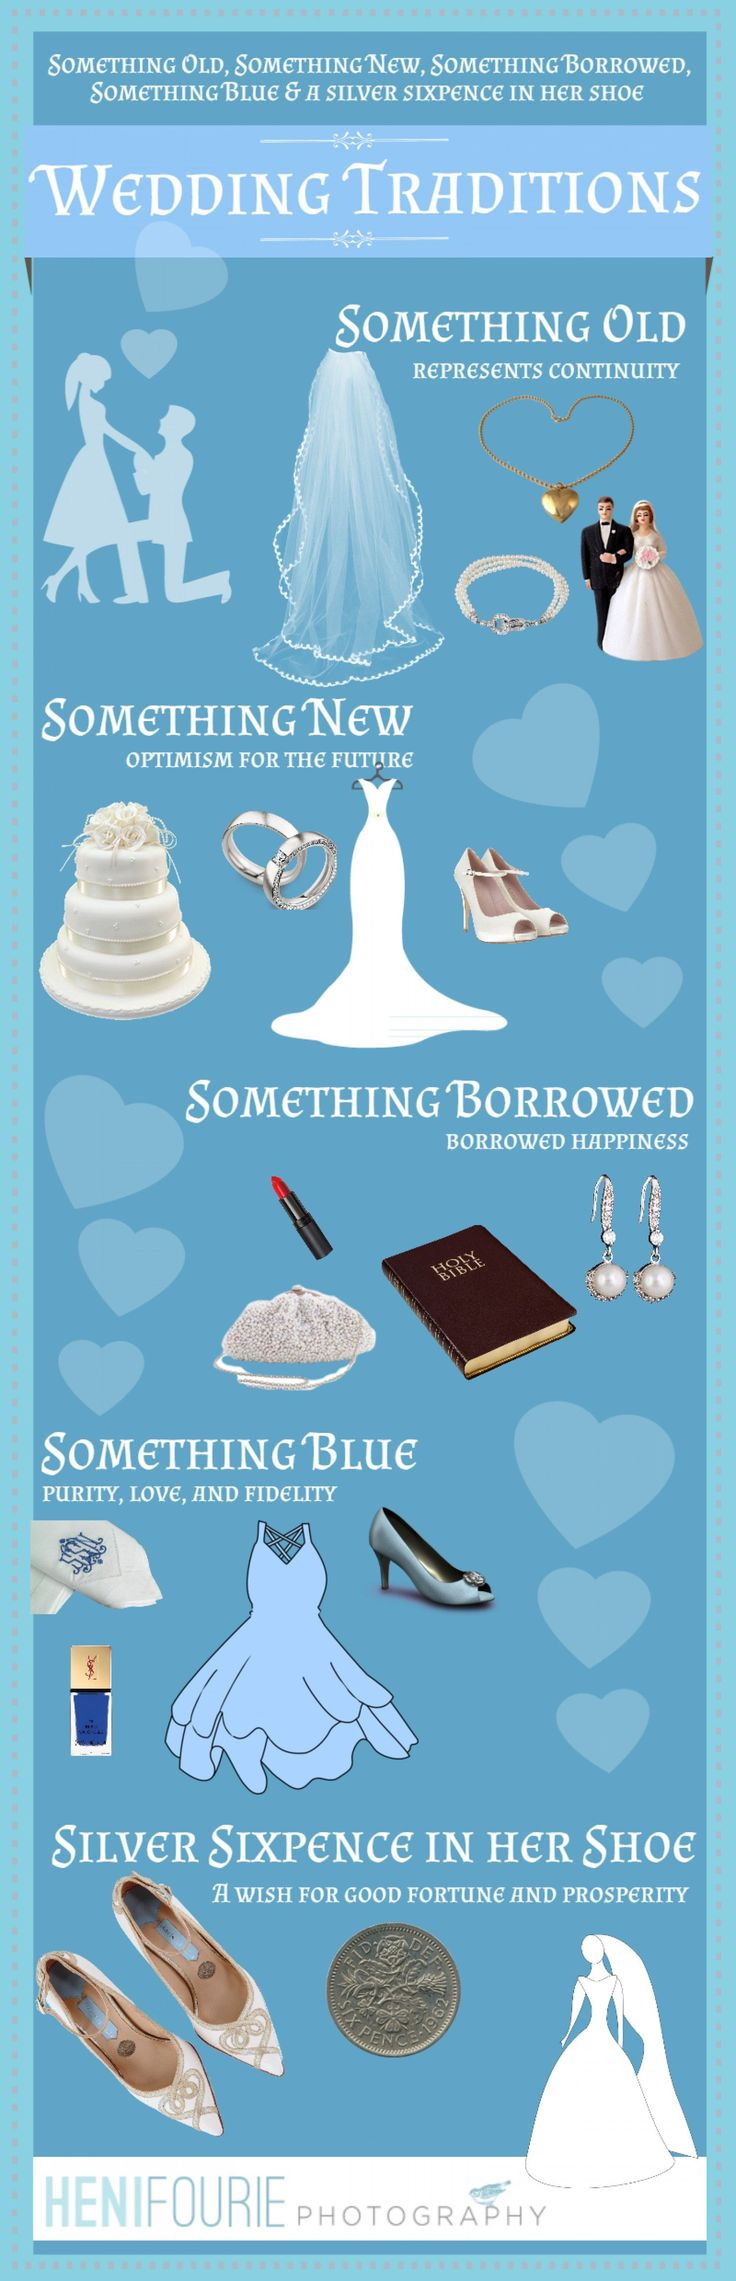 You May Already Know The British Rhyme For Your Wedding Day Something Old New Borrowed Blue A Silver Sixpence In